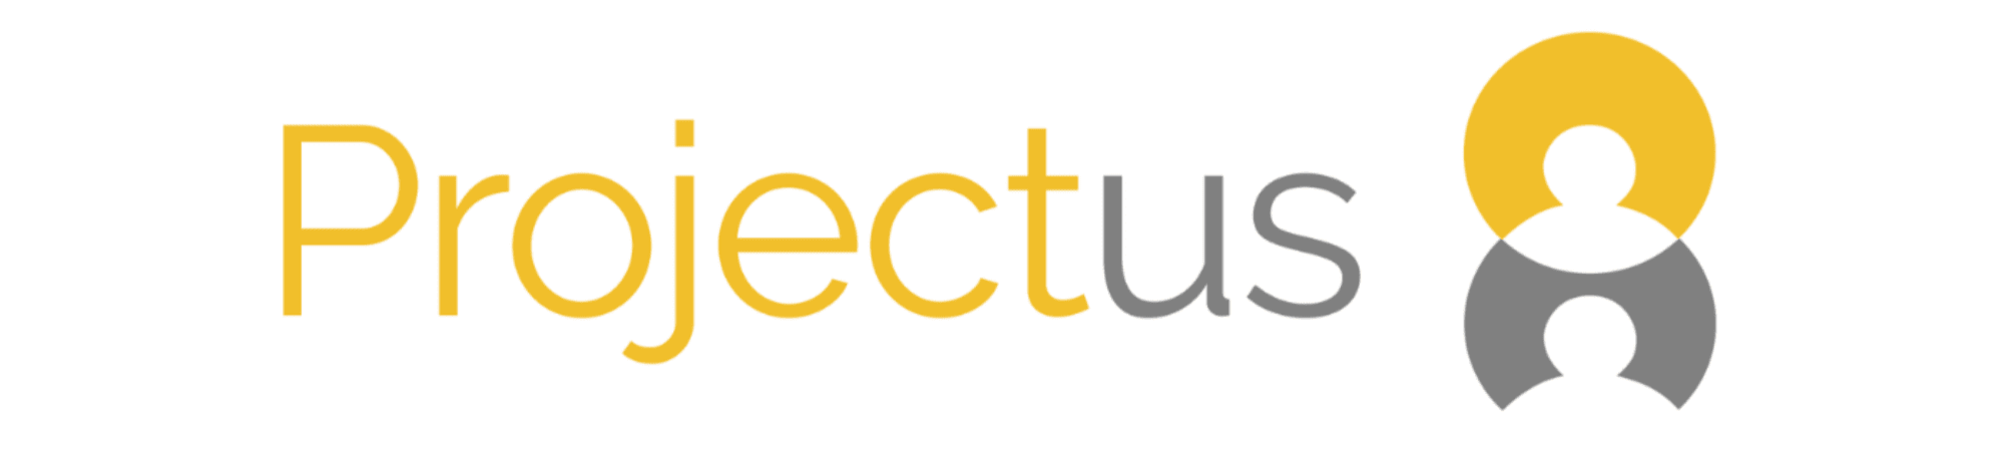 Projectus are a Diversity & Inclusion Search Firm